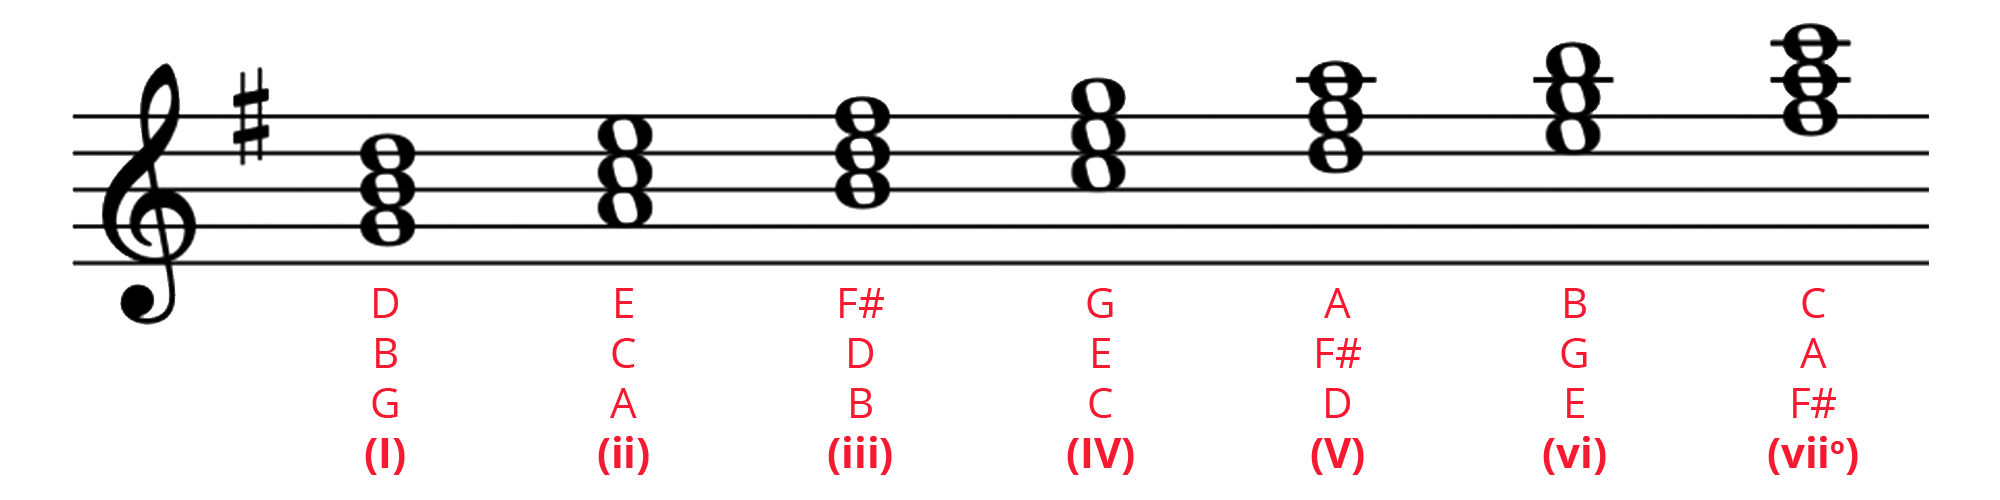 Diatonic chords of G major on the treble staff with note names and Roman numerals.